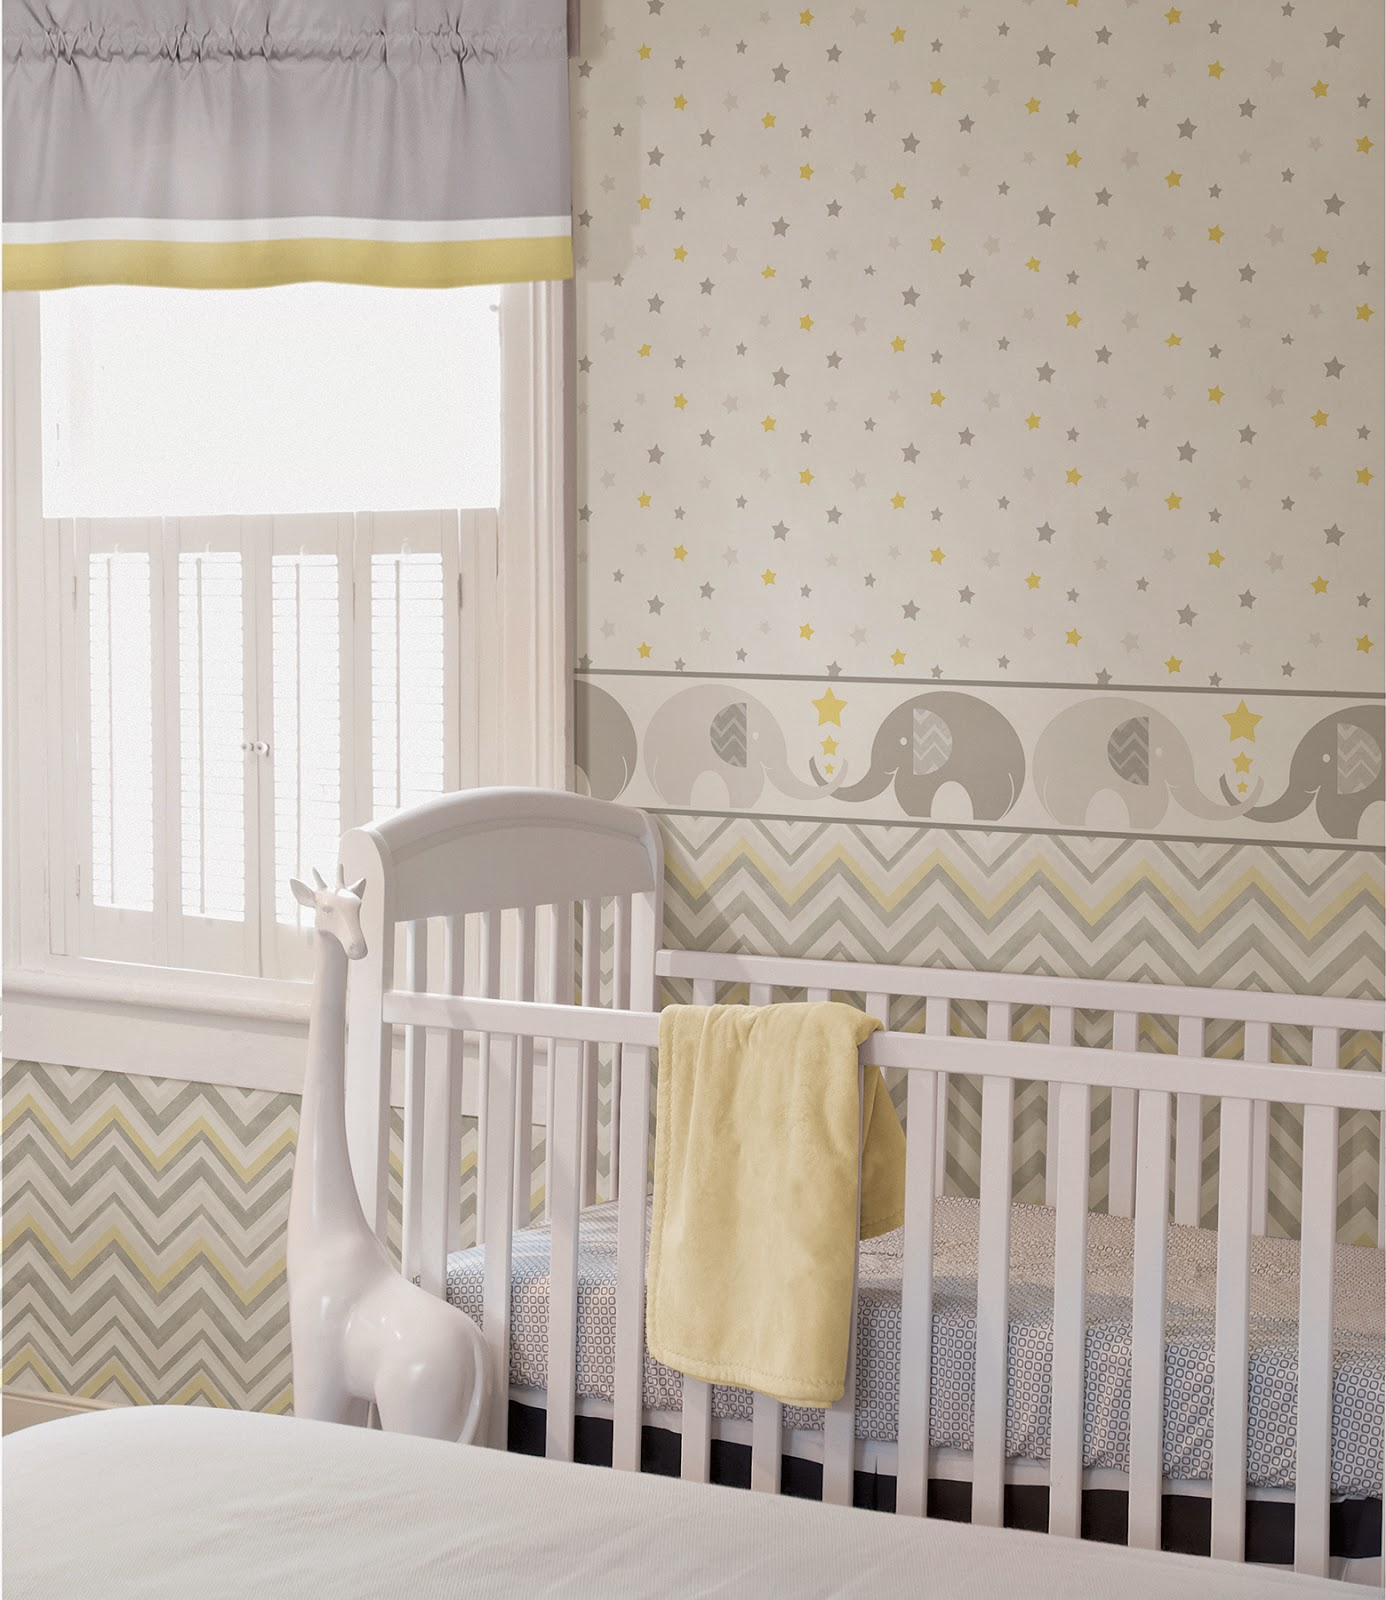 wallcoverings for less wallpaper and border suited for a